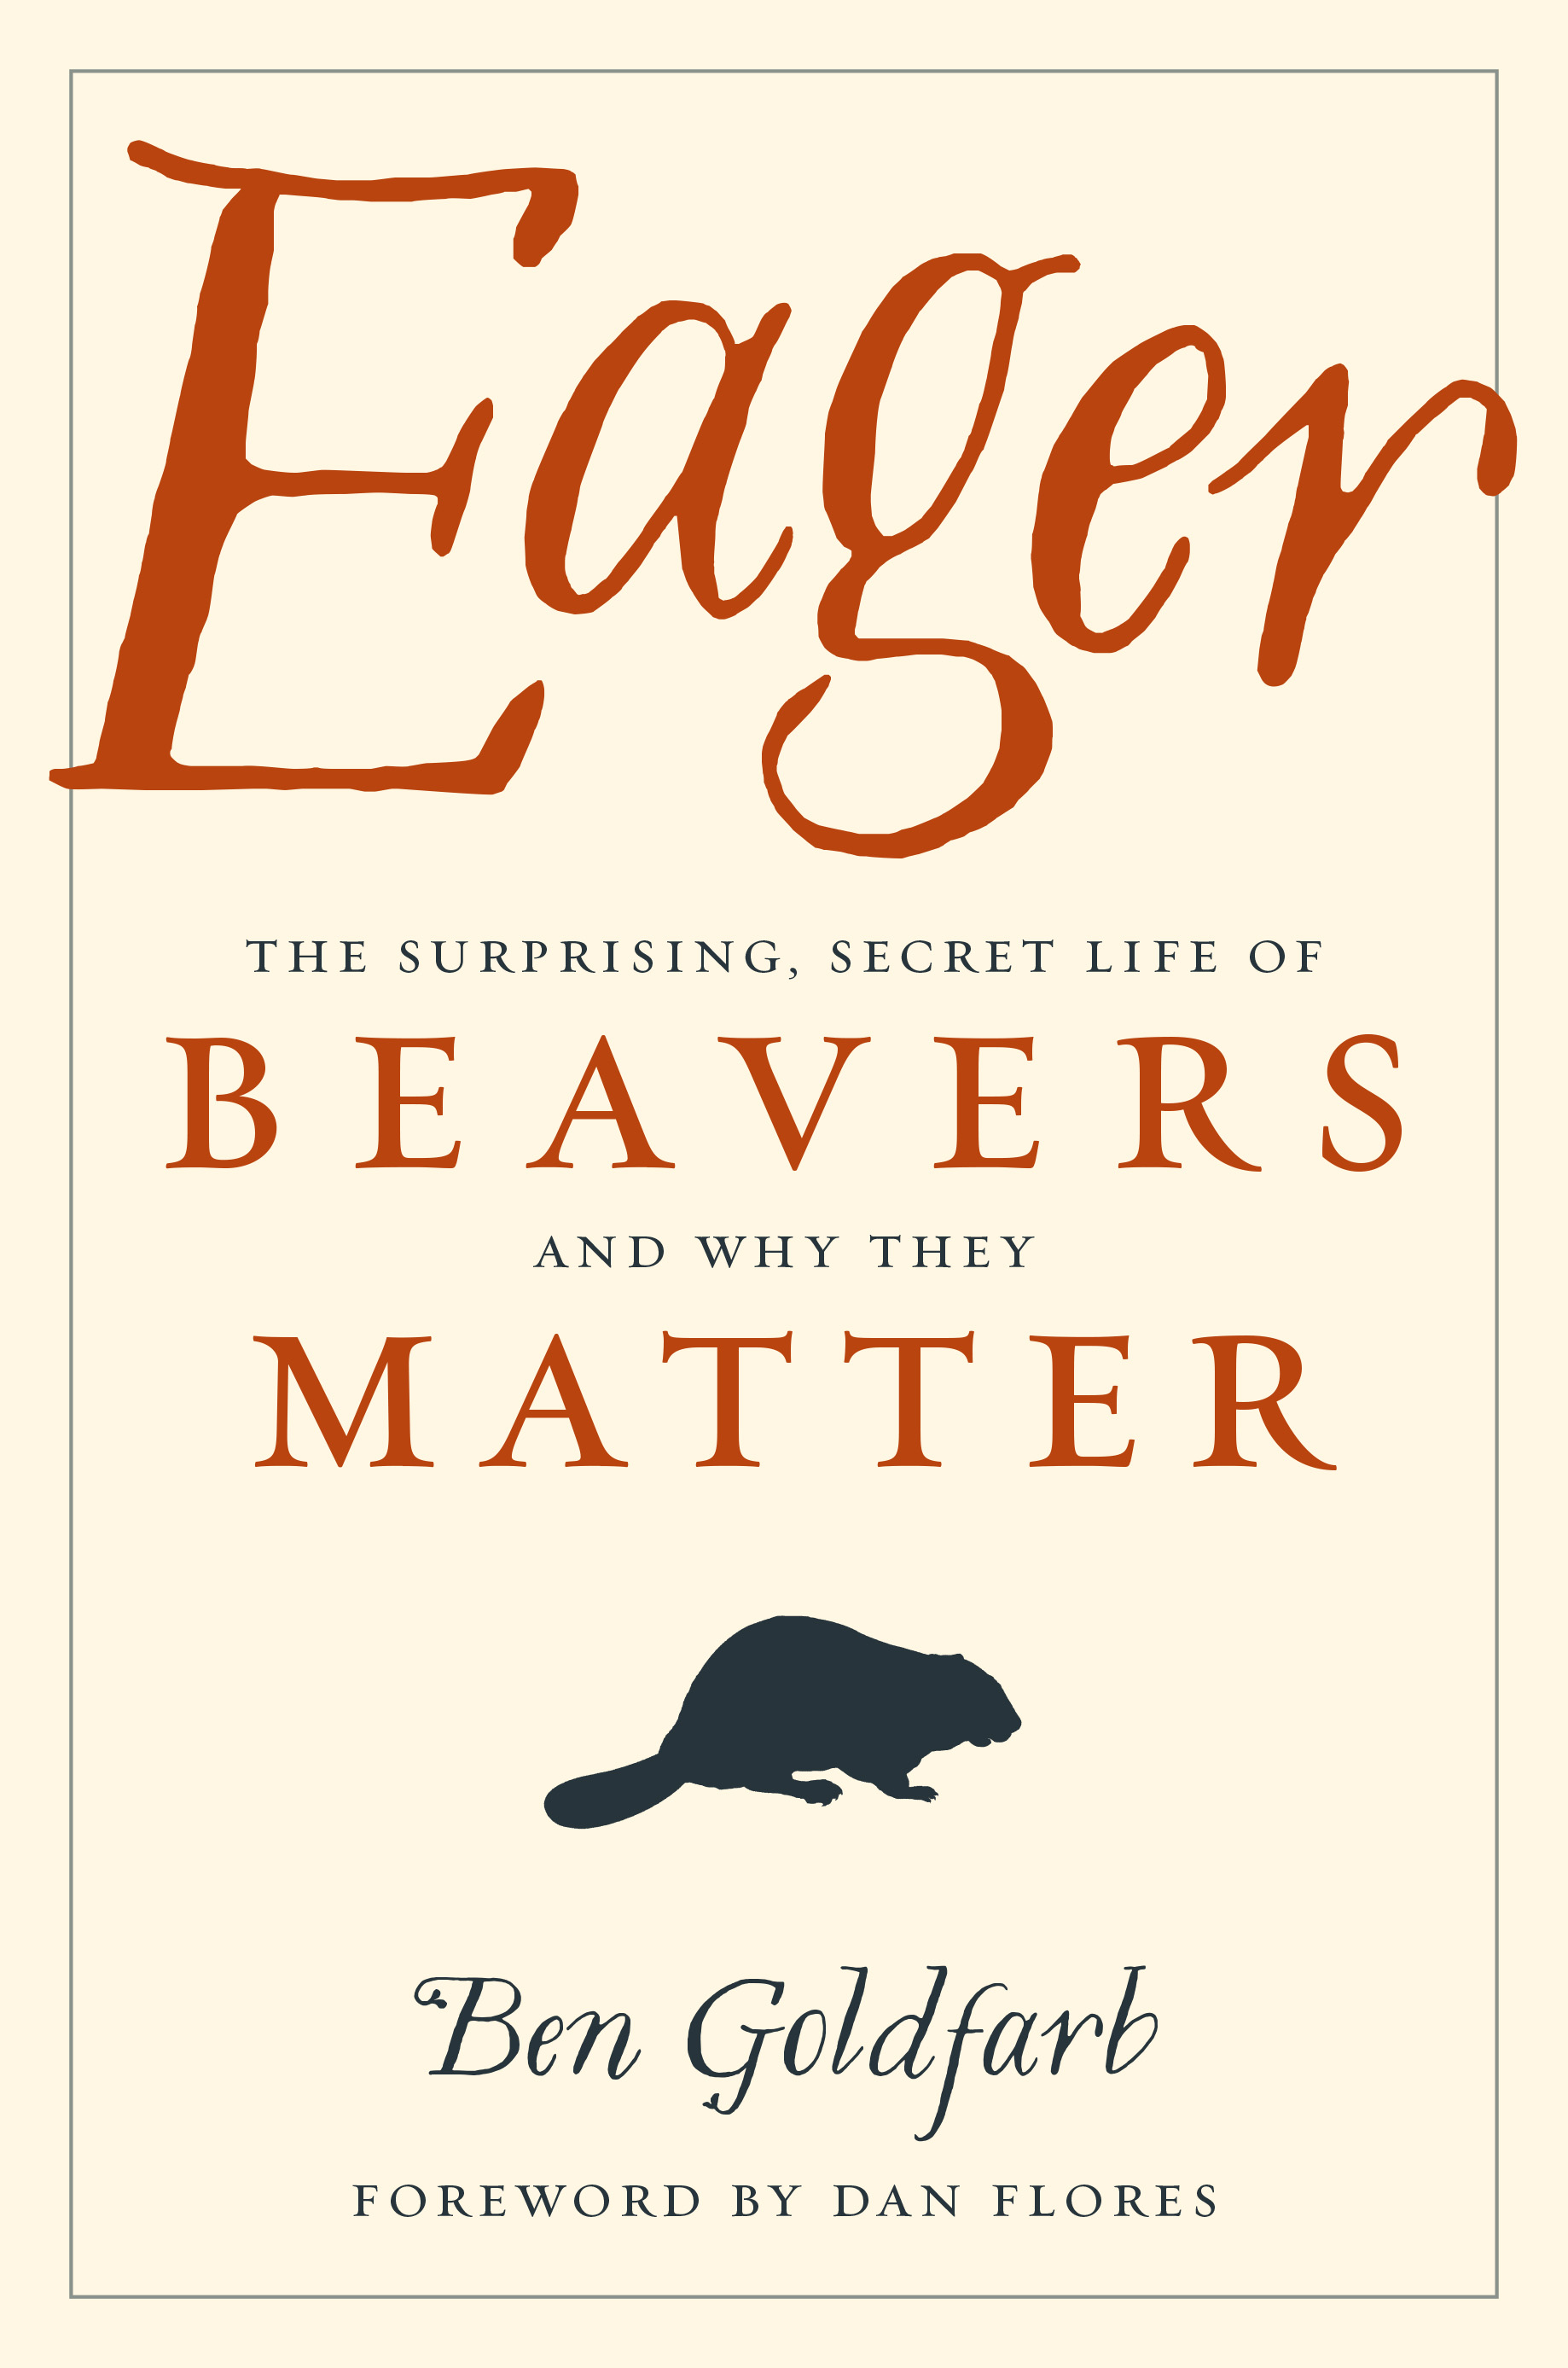 Cover photo for Ben Goldfarb's book, Eager